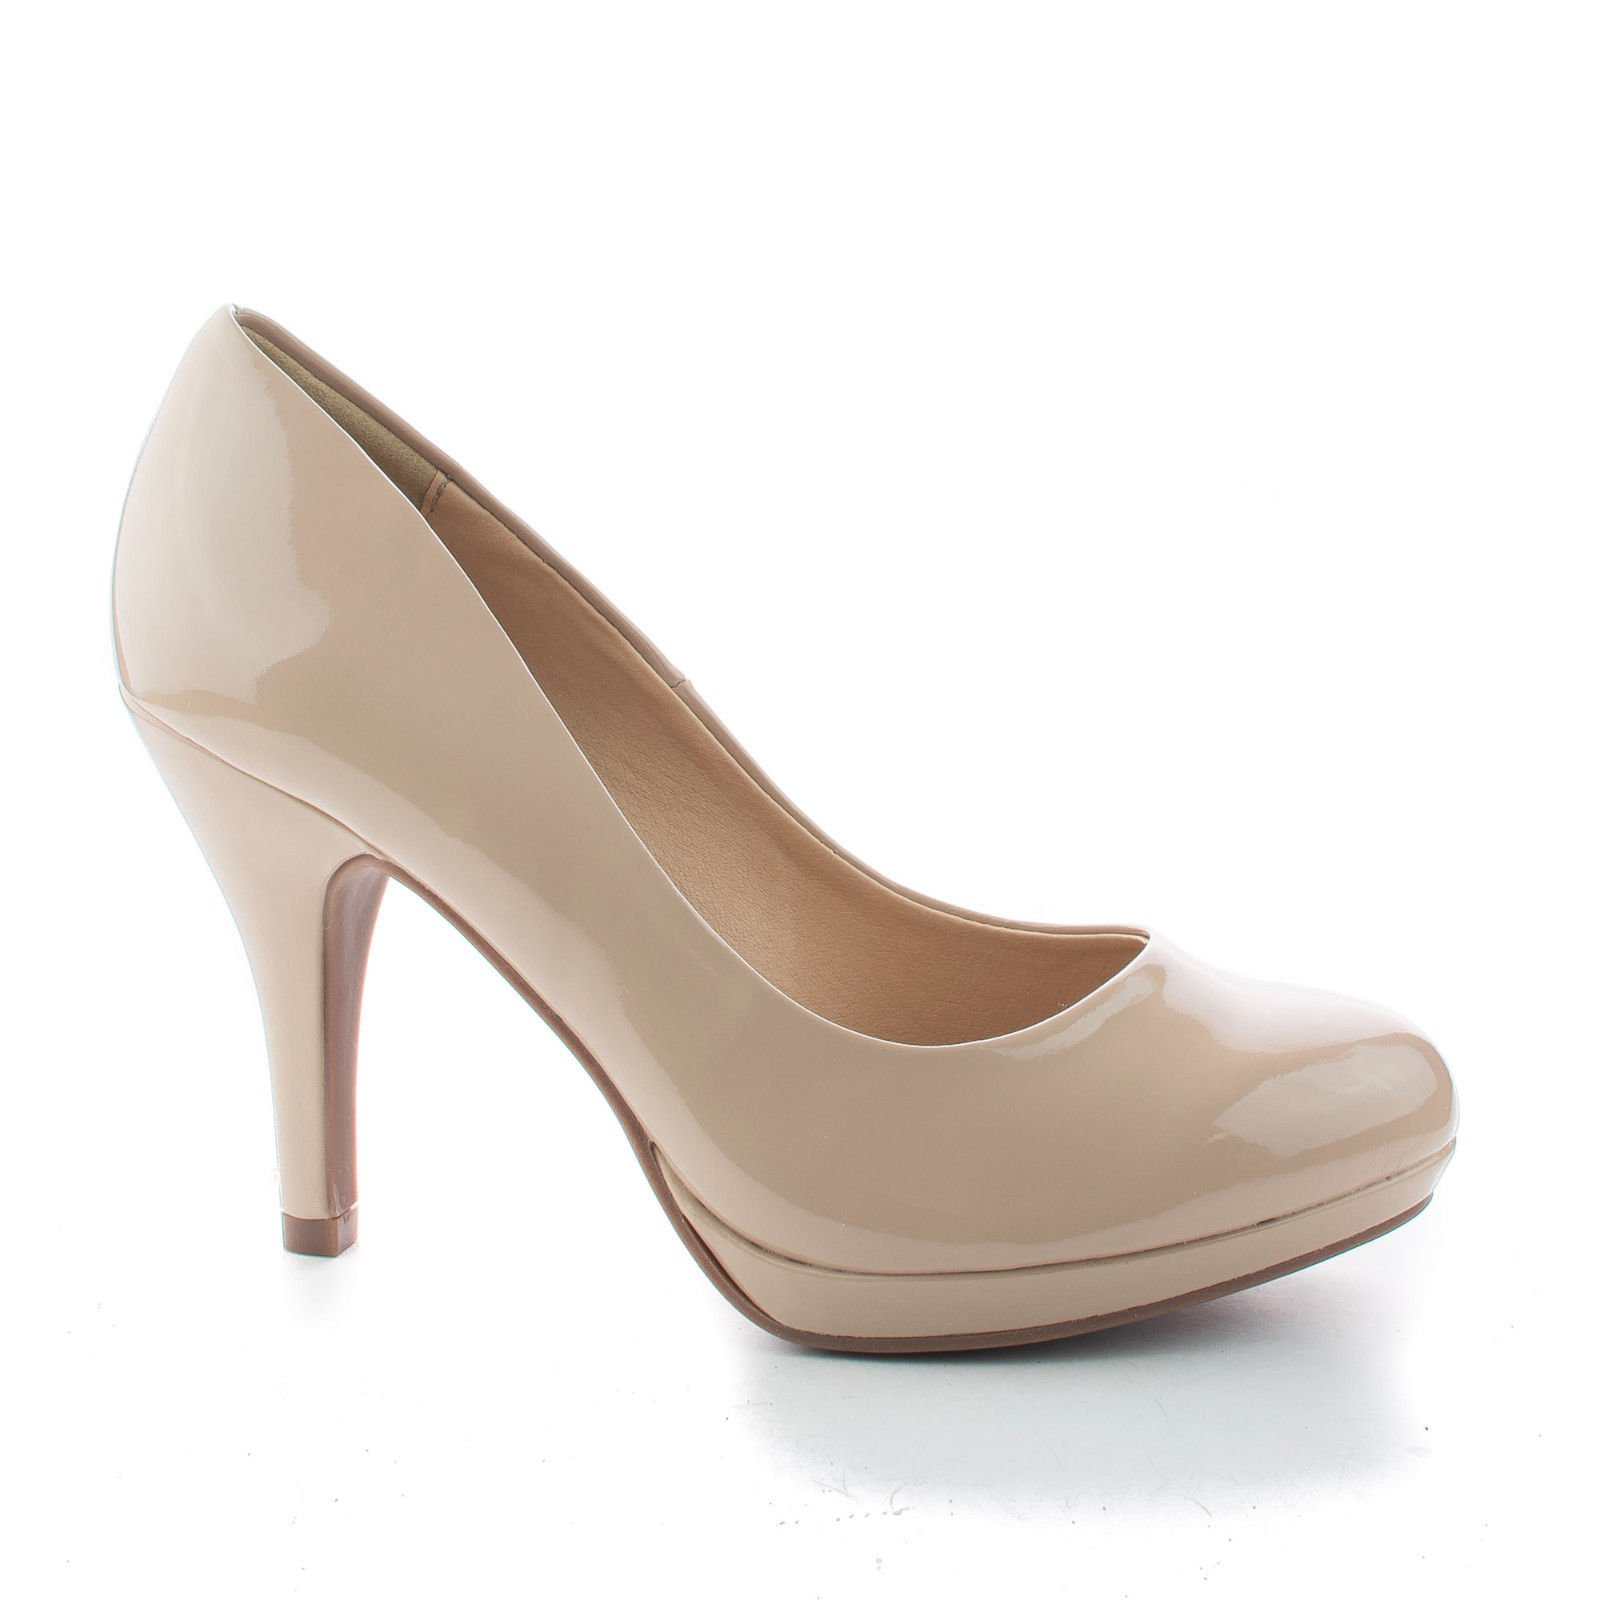 Sully's Round Toe Extra Cushioned Comfort Classic Dress Work Pumps (6 M US, Beige Pat)